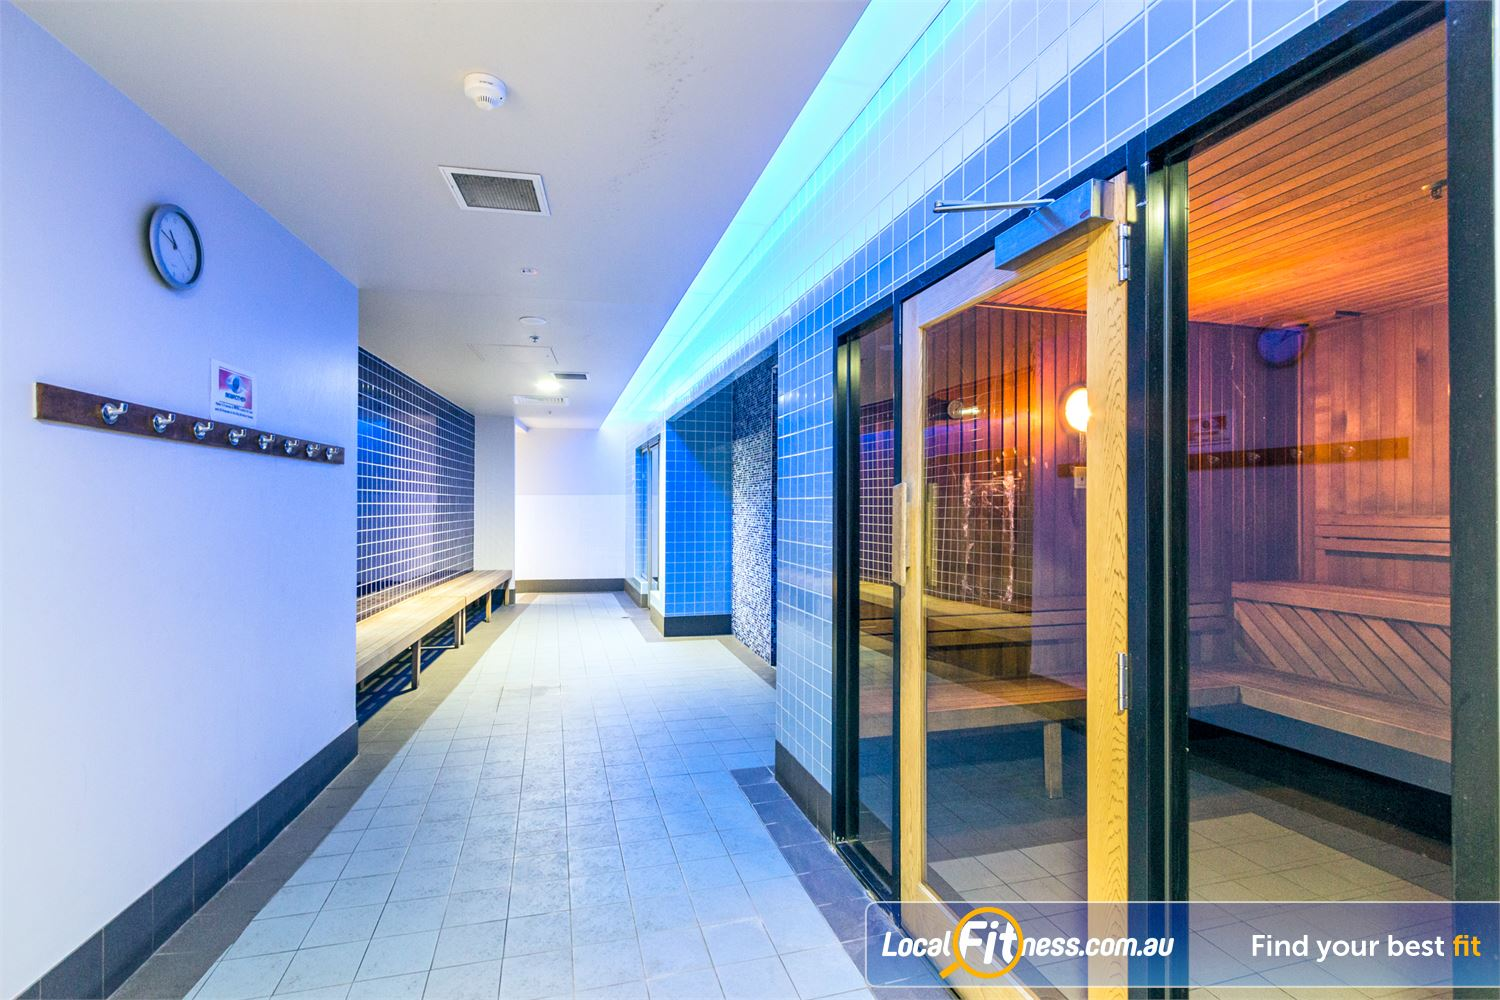 Goodlife Health Clubs Fortitude Valley Goodlife Fortitude Valley features a luxurious sauna.